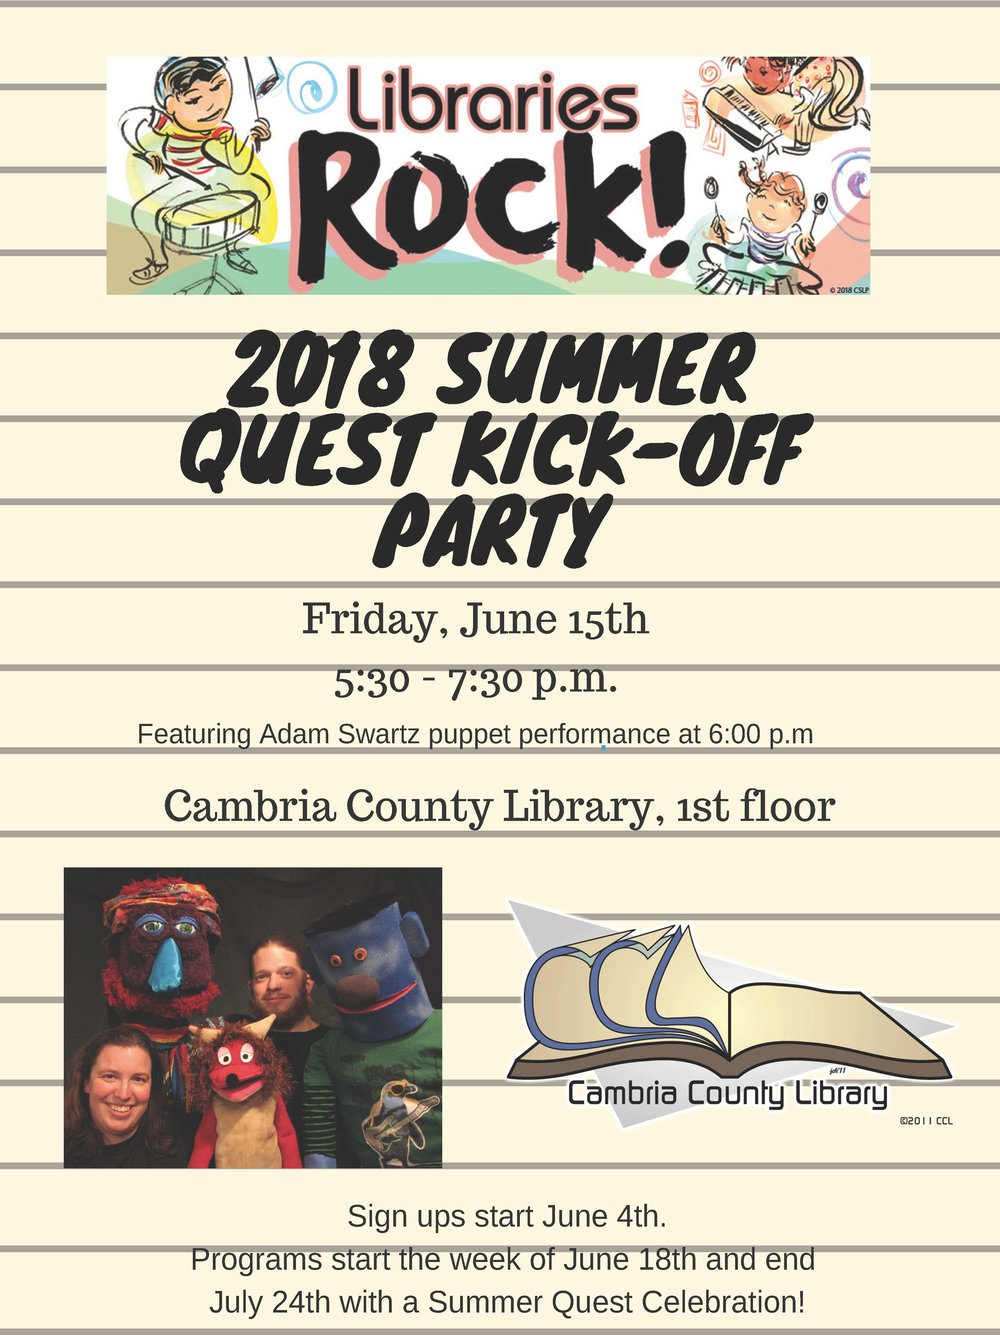 SummerQuest library kick-off party (1).jpg